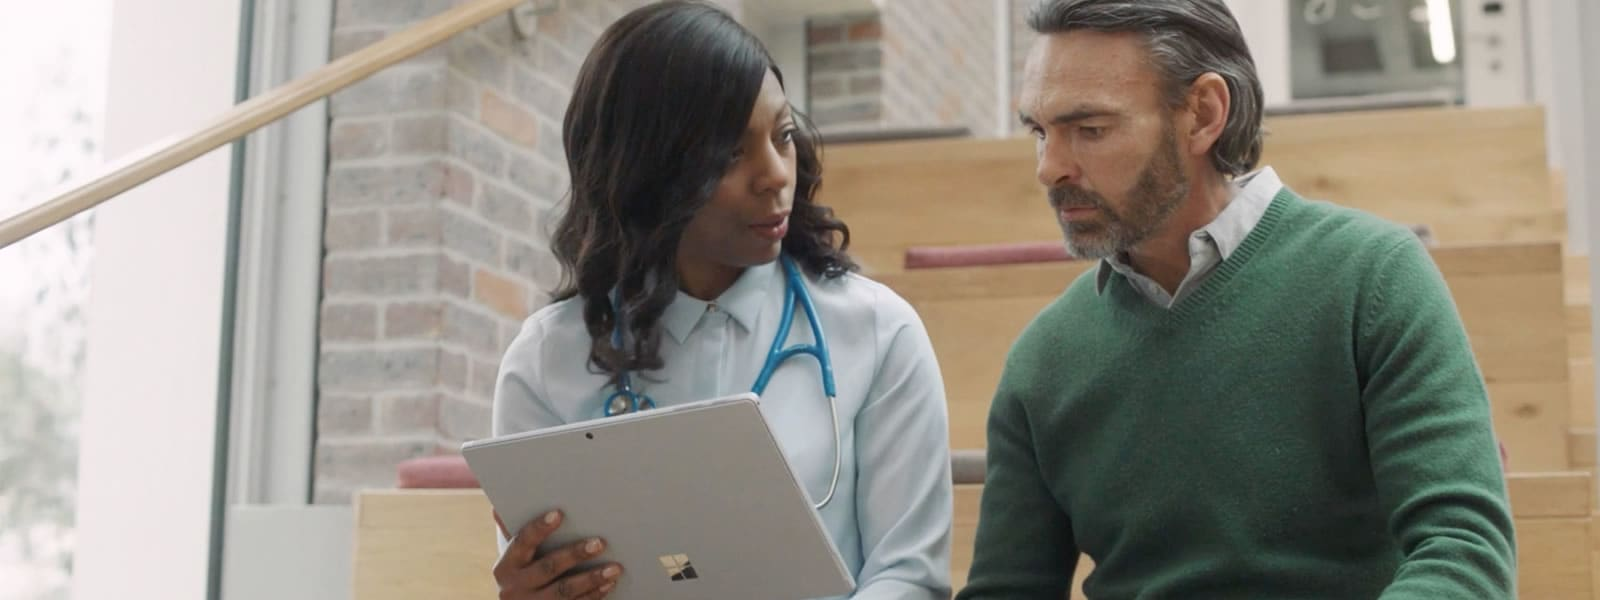 medical provider reviewing information on a tablet with patient